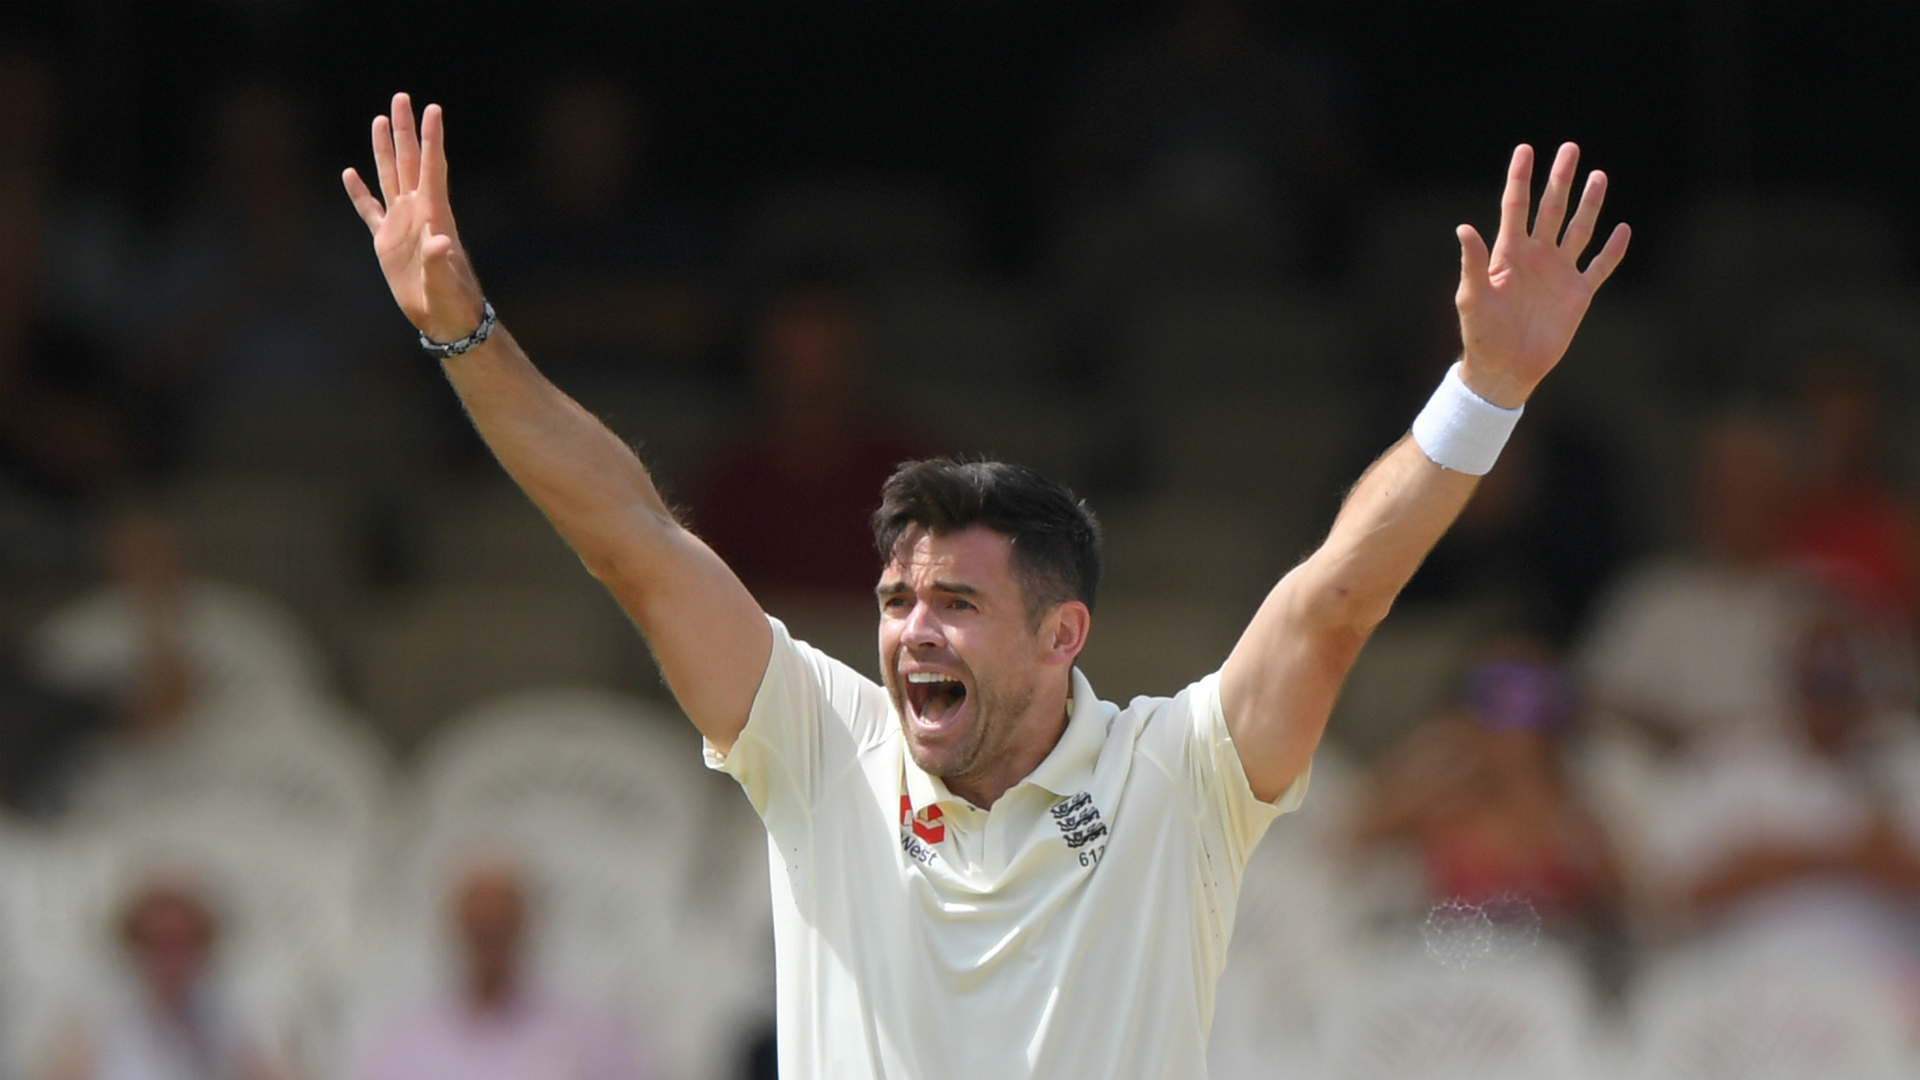 England's leading Test wicket-taker says he is not finished yet at international level amid uncertainty over the cricket calendar.